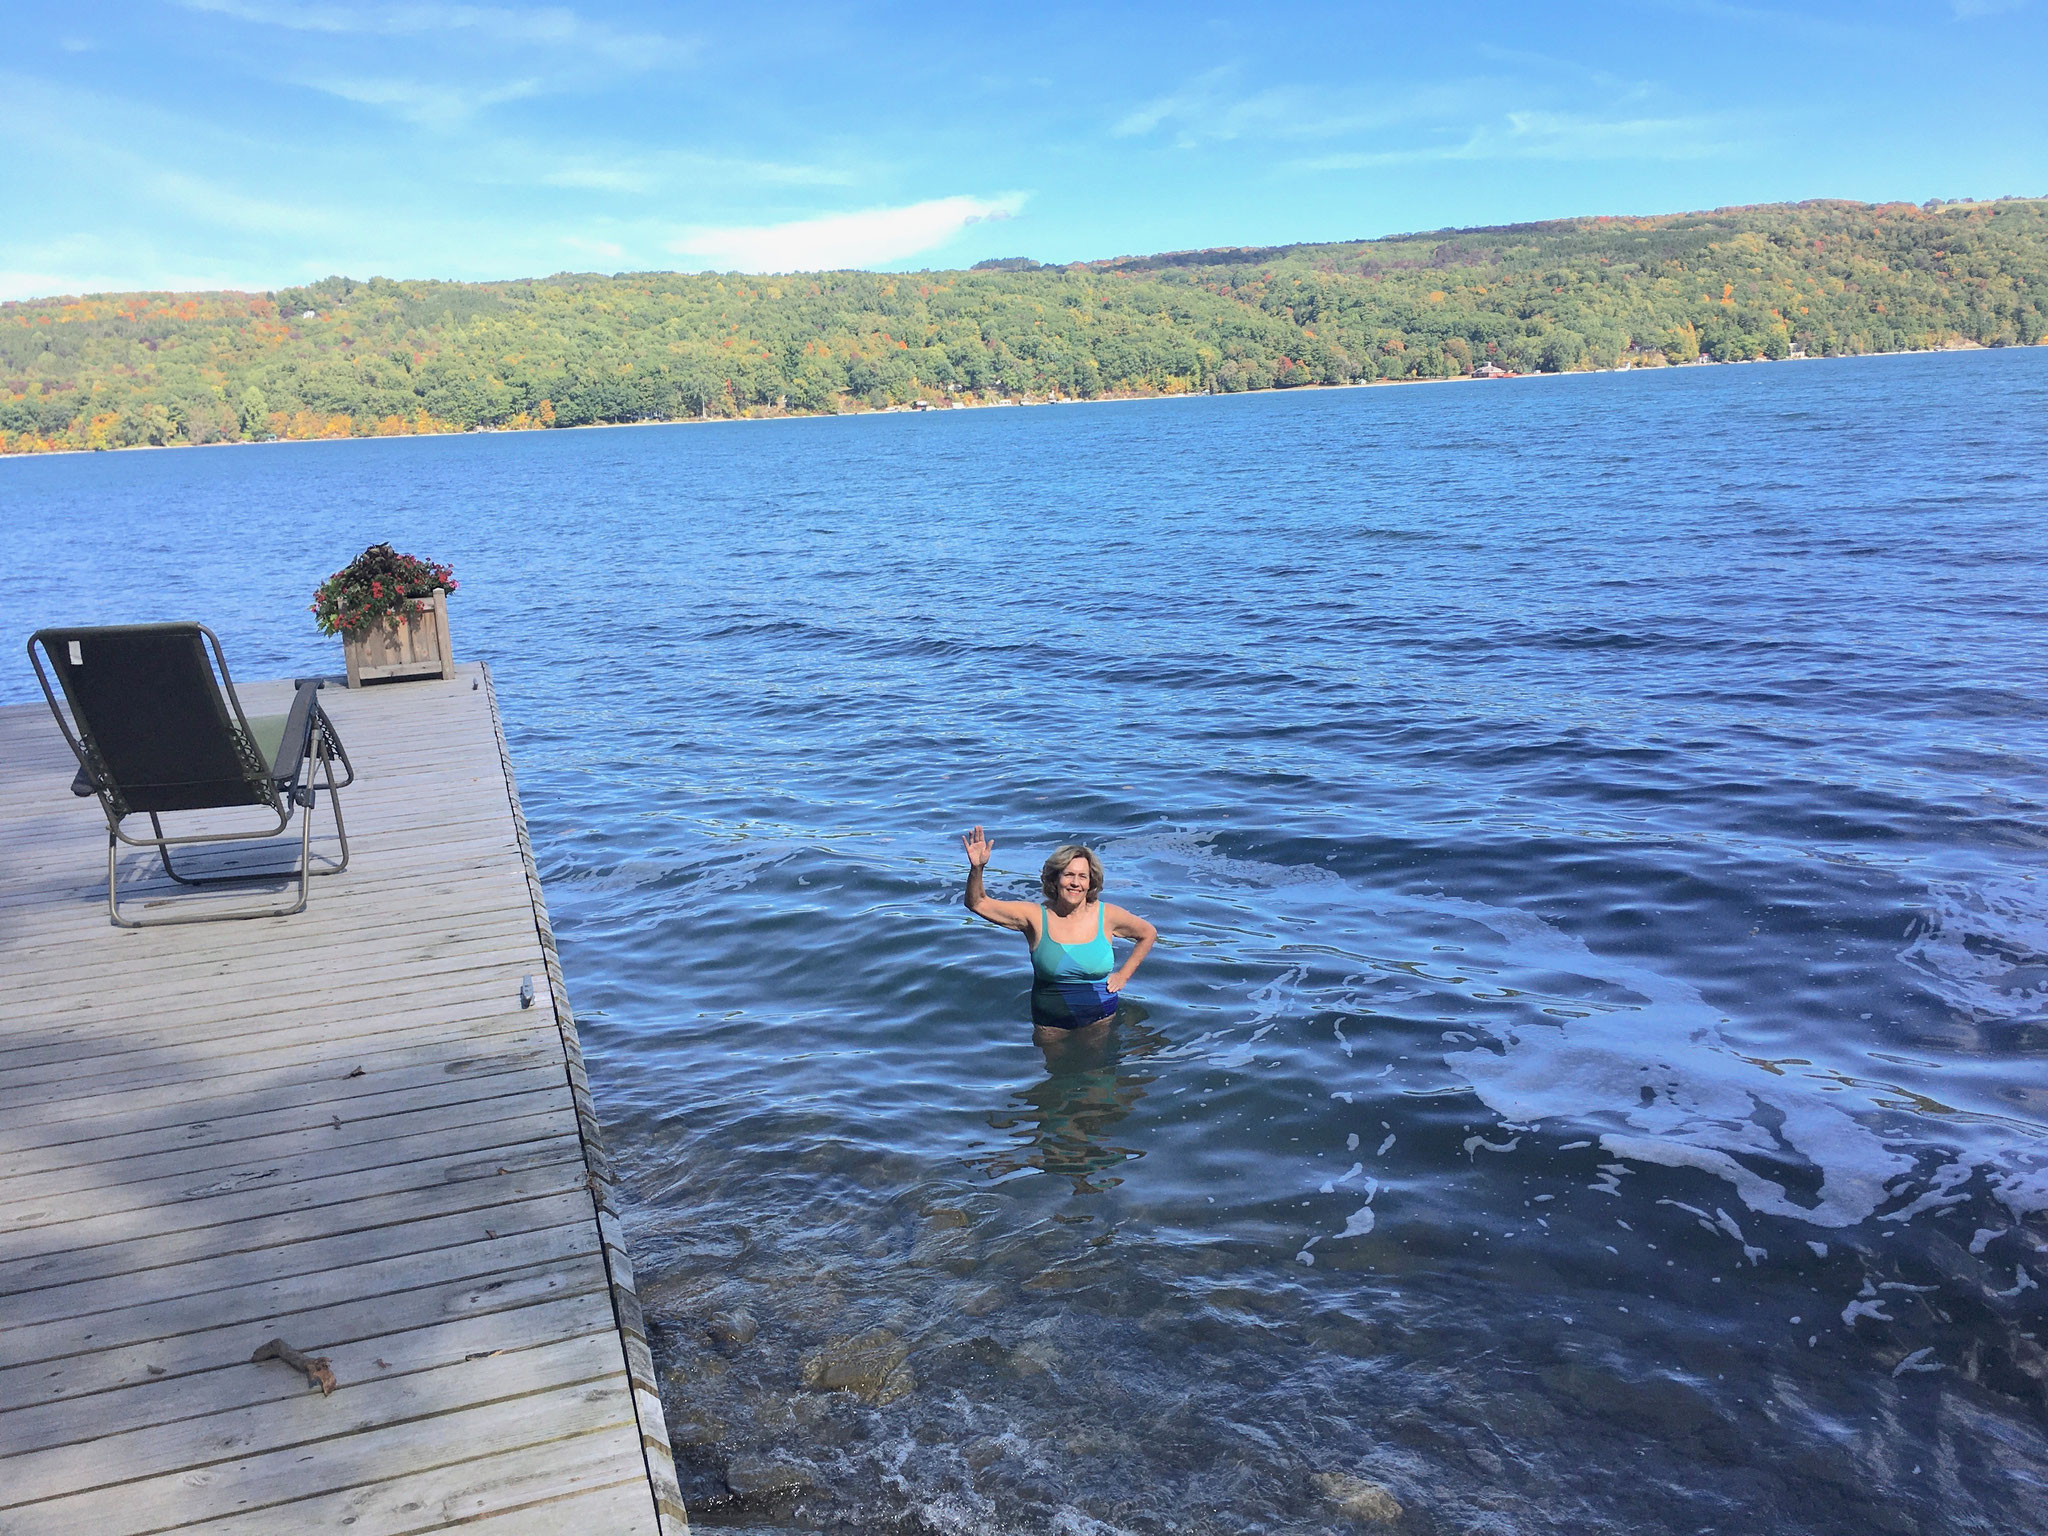 swimming in Skaneateles Lake, 9-27 and 9-29-20! Chilly but nice!!